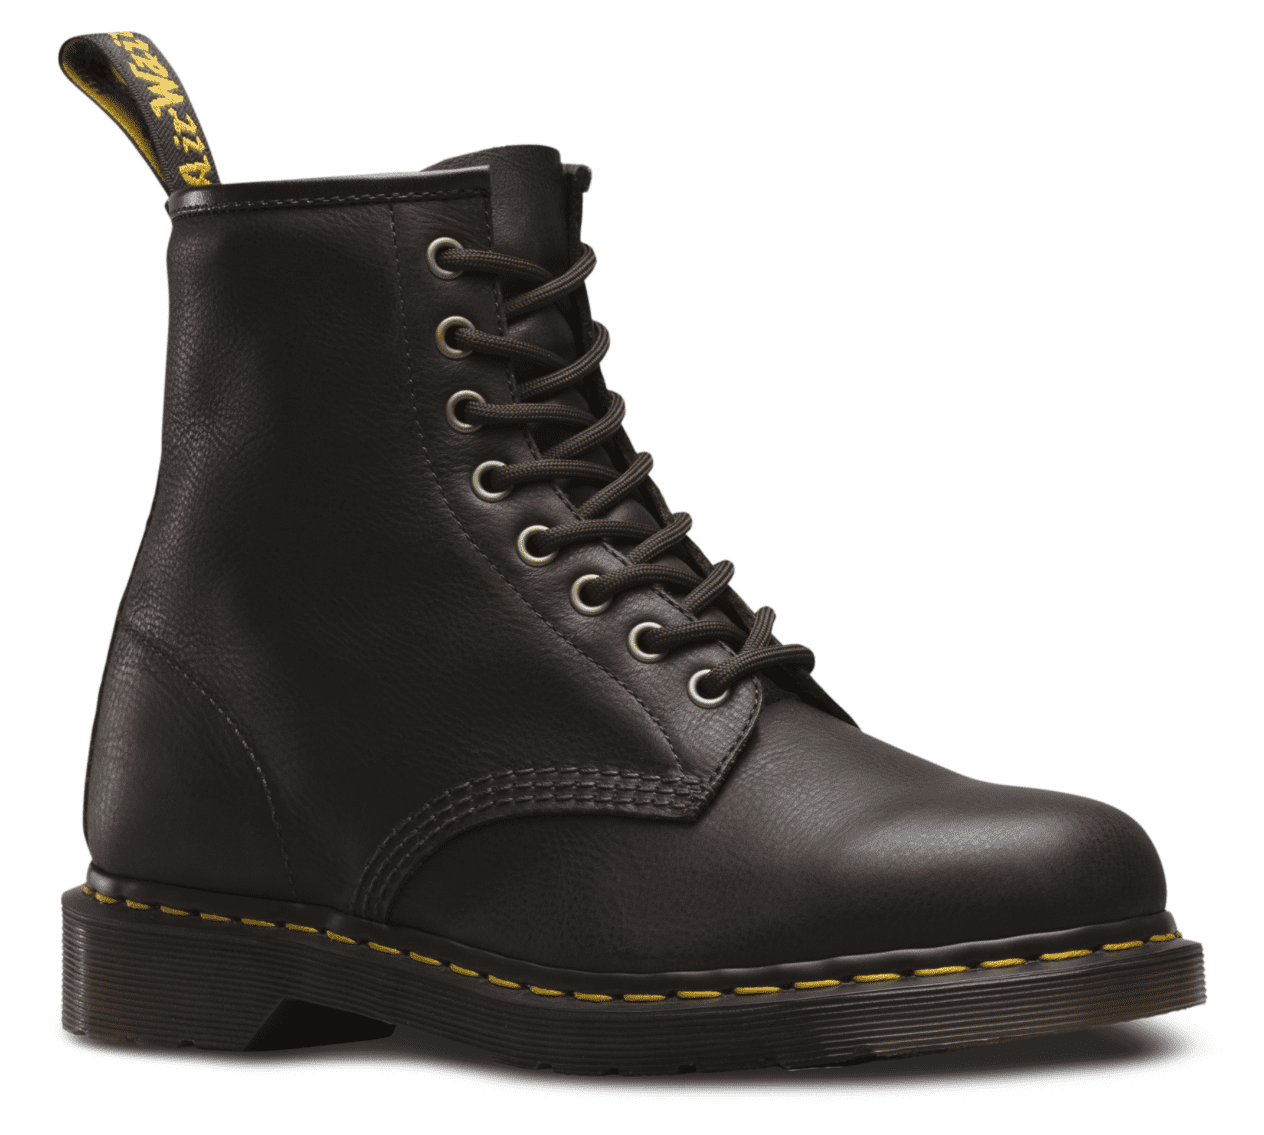 Dr. Martens Men's 1460 8-Eye Fashion Boots Chocolate Leather 9 M UK 10 M US by Dr. Martens